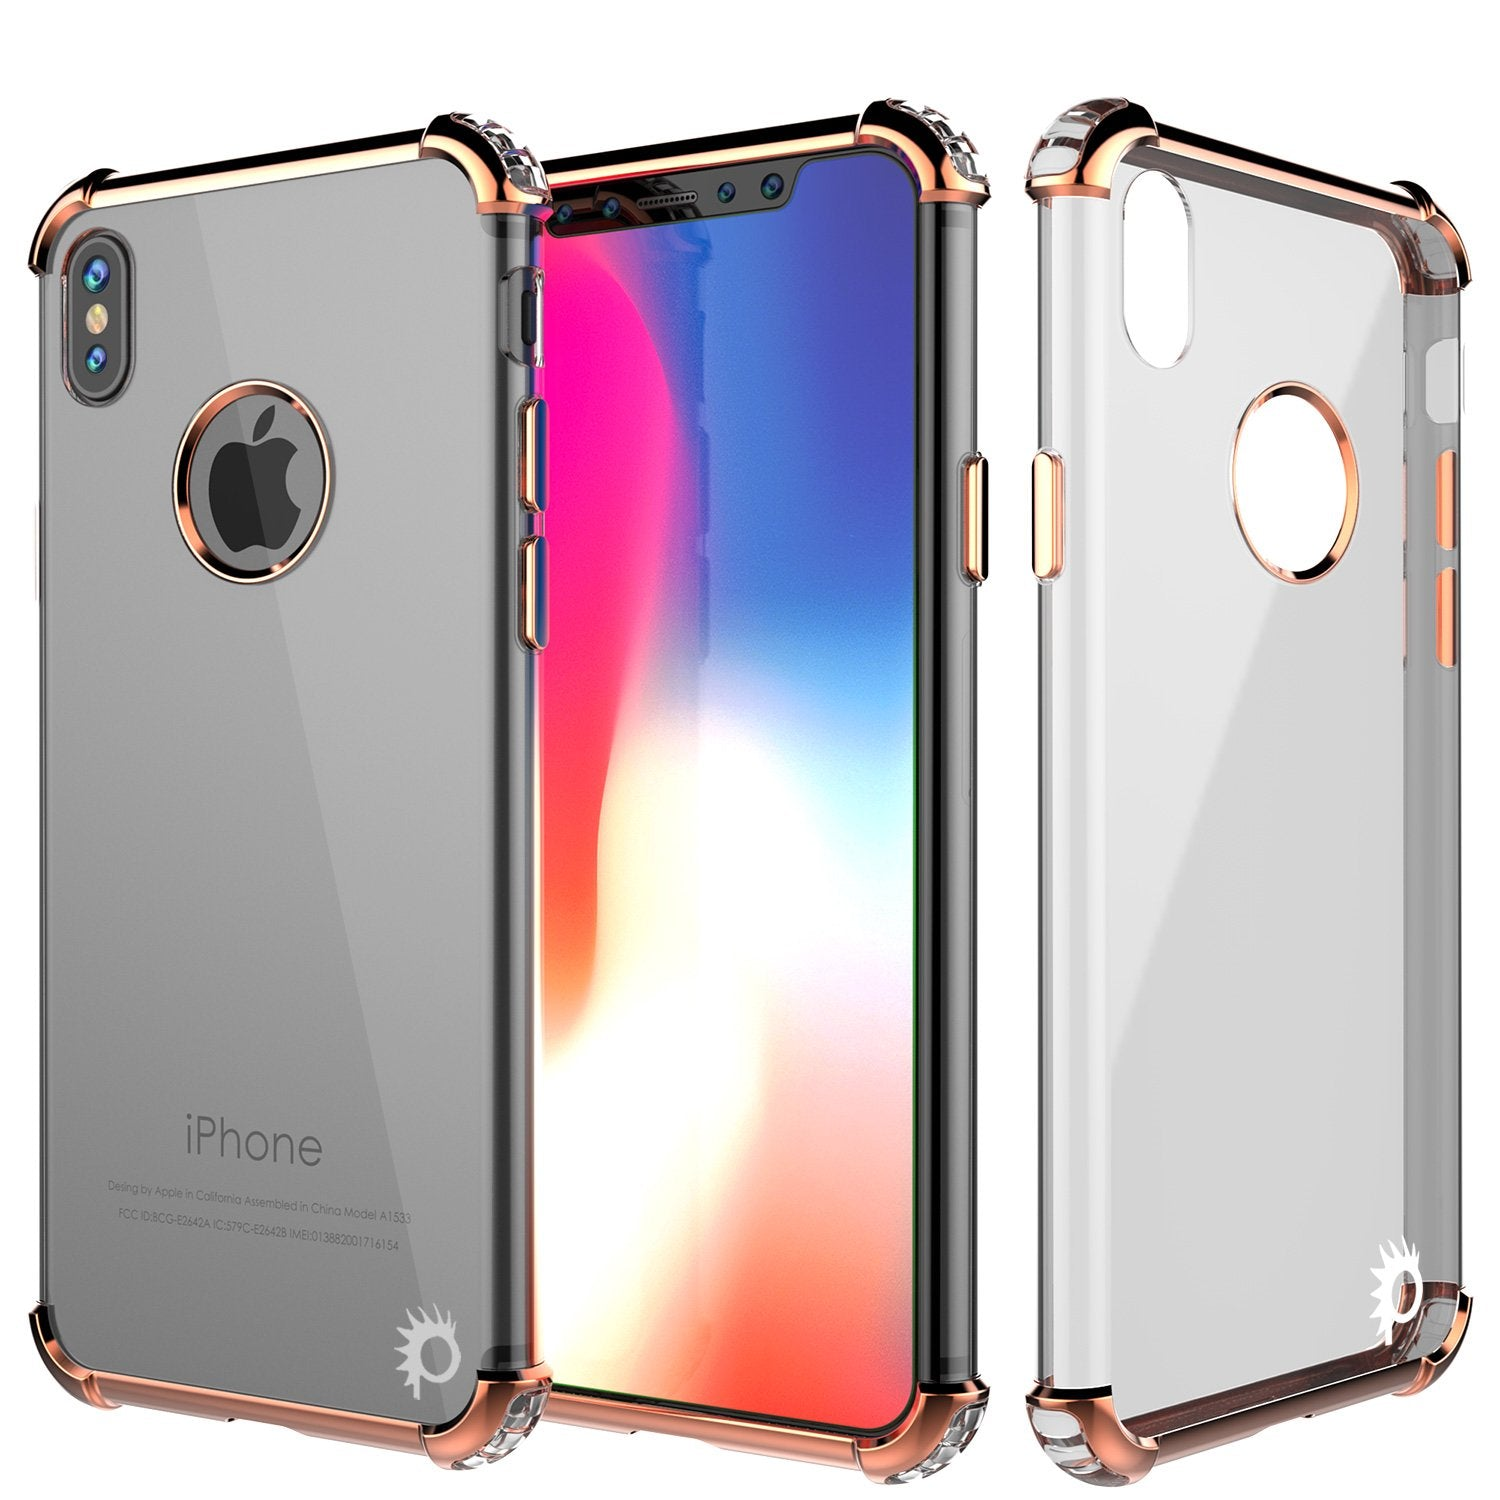 iPhone X Case, Punkcase [BLAZE SERIES] Protective Cover W/ PunkShield Screen Protector [Shockproof] [Slim Fit] for Apple iPhone 10 [Rosegold]